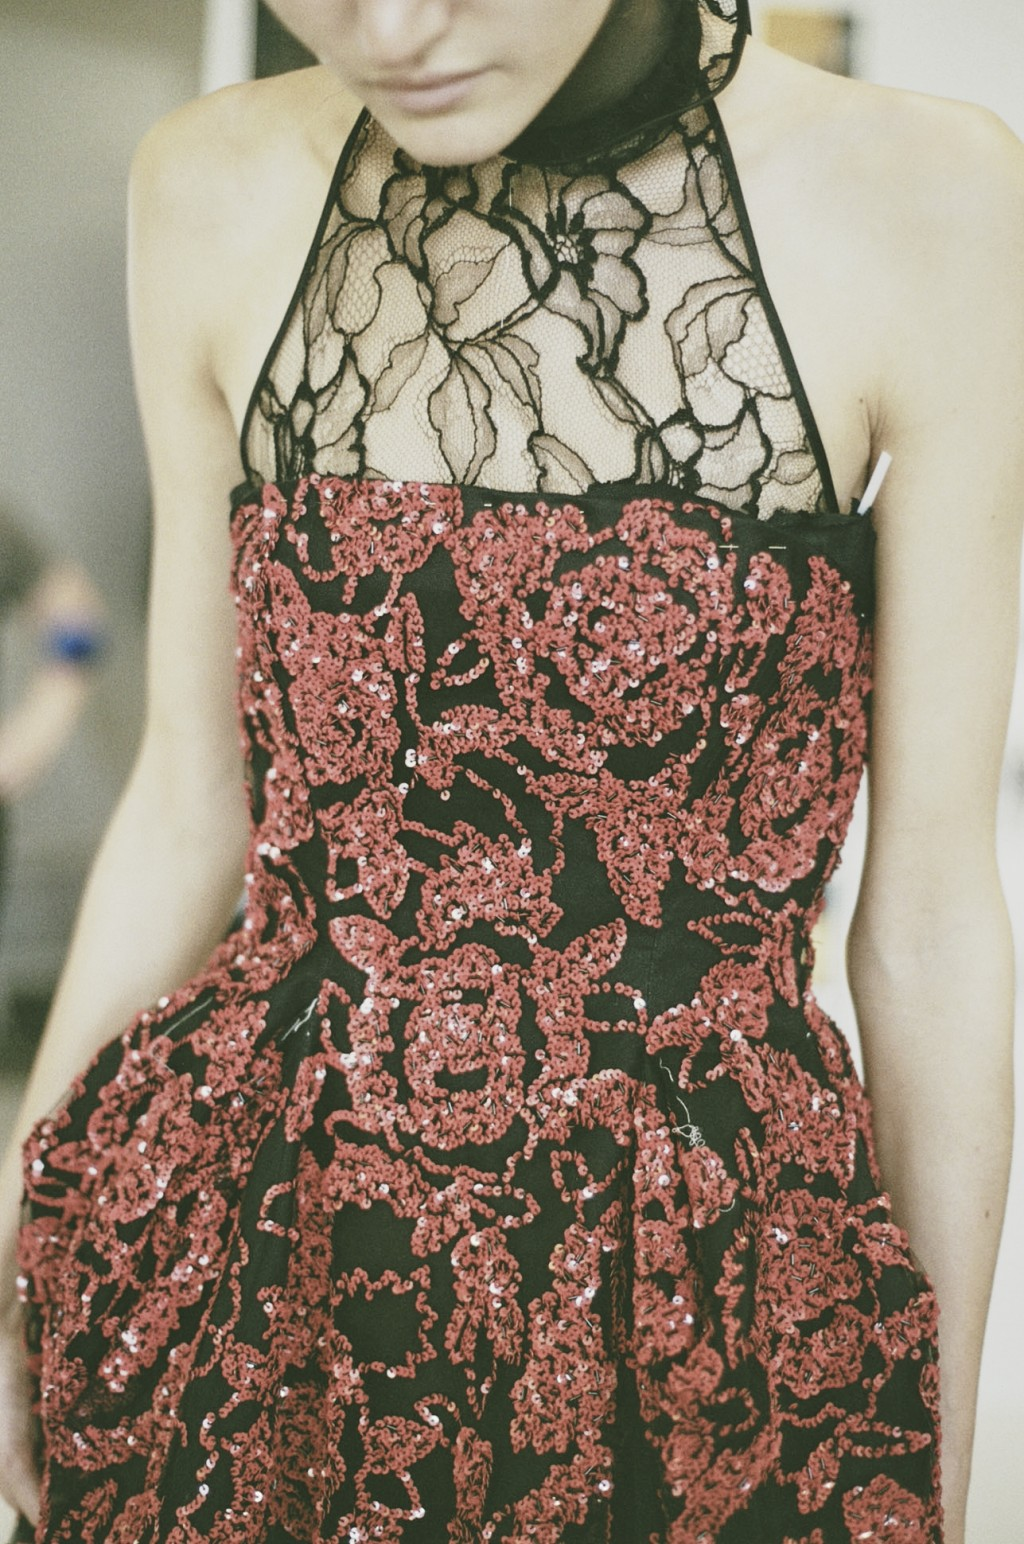 These Oscar de la Renta Backstage Images Will Take Your Breath Away